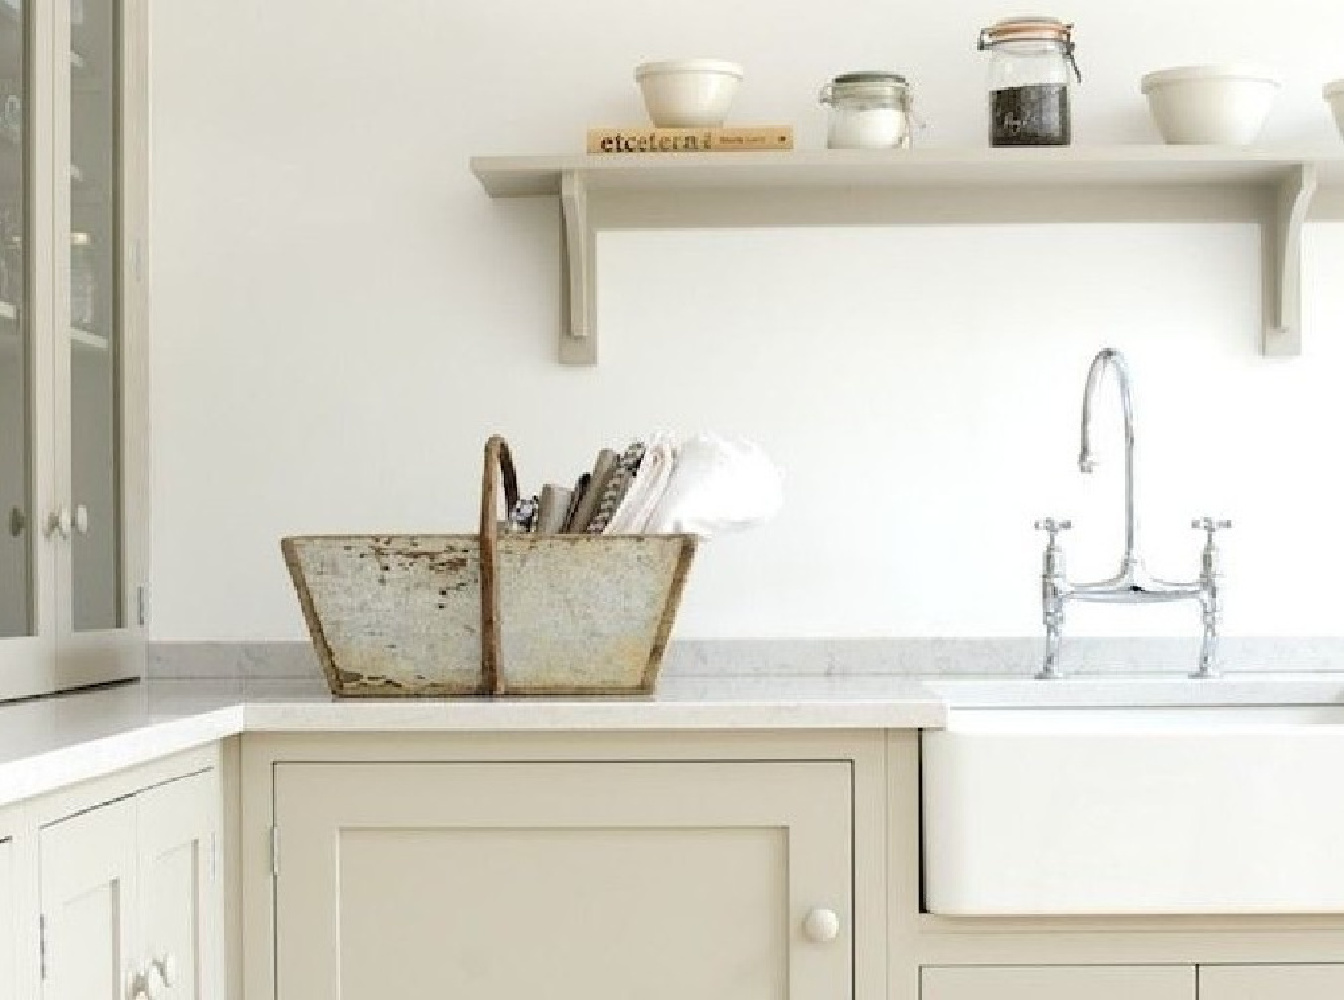 Gorgeous Shaker style kitchen by Devol with country style, Silestone Lagoon quartz counters, an open shelf, farm sink, and a chrome bridge faucet. #silestone #lagoon #quartz #kitchendesign